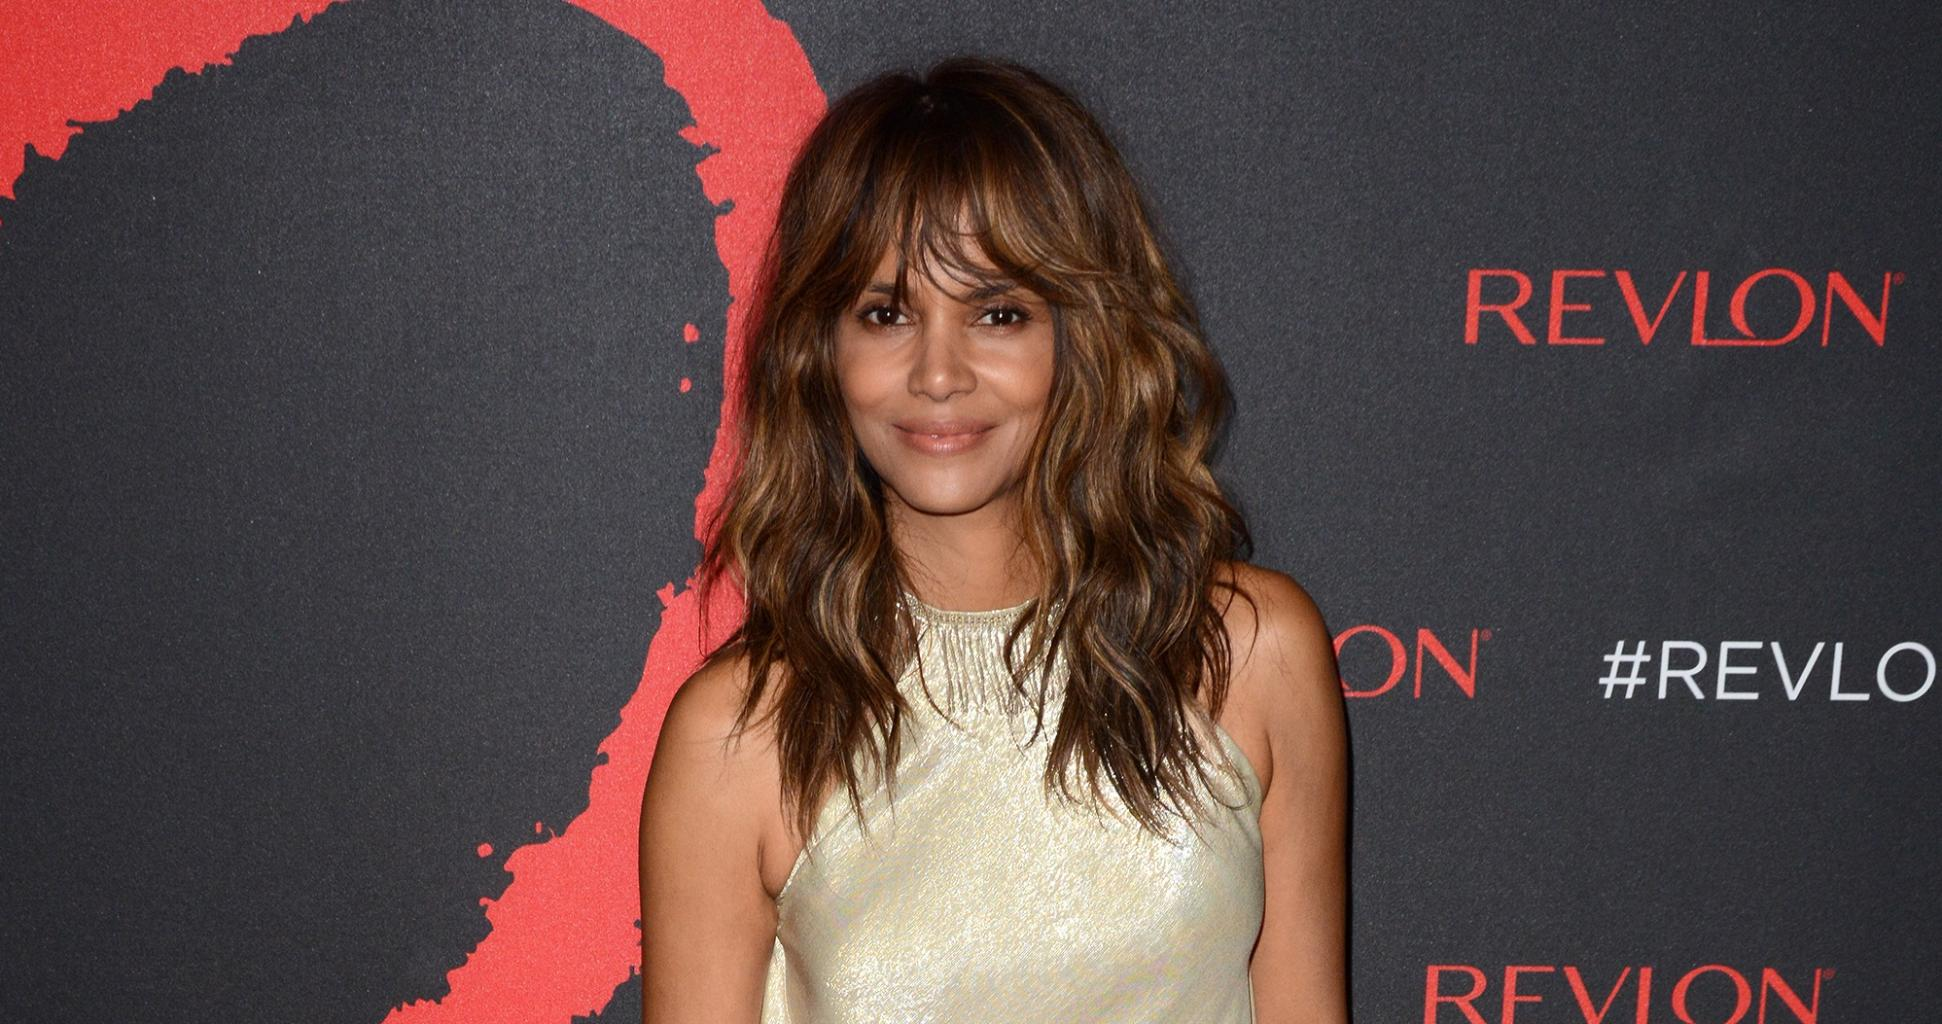 Halle Berry Says She Feels    Guilty '  After Three Failed Marriages:    I   ve Suffered A Lot Of Pain And Anguish